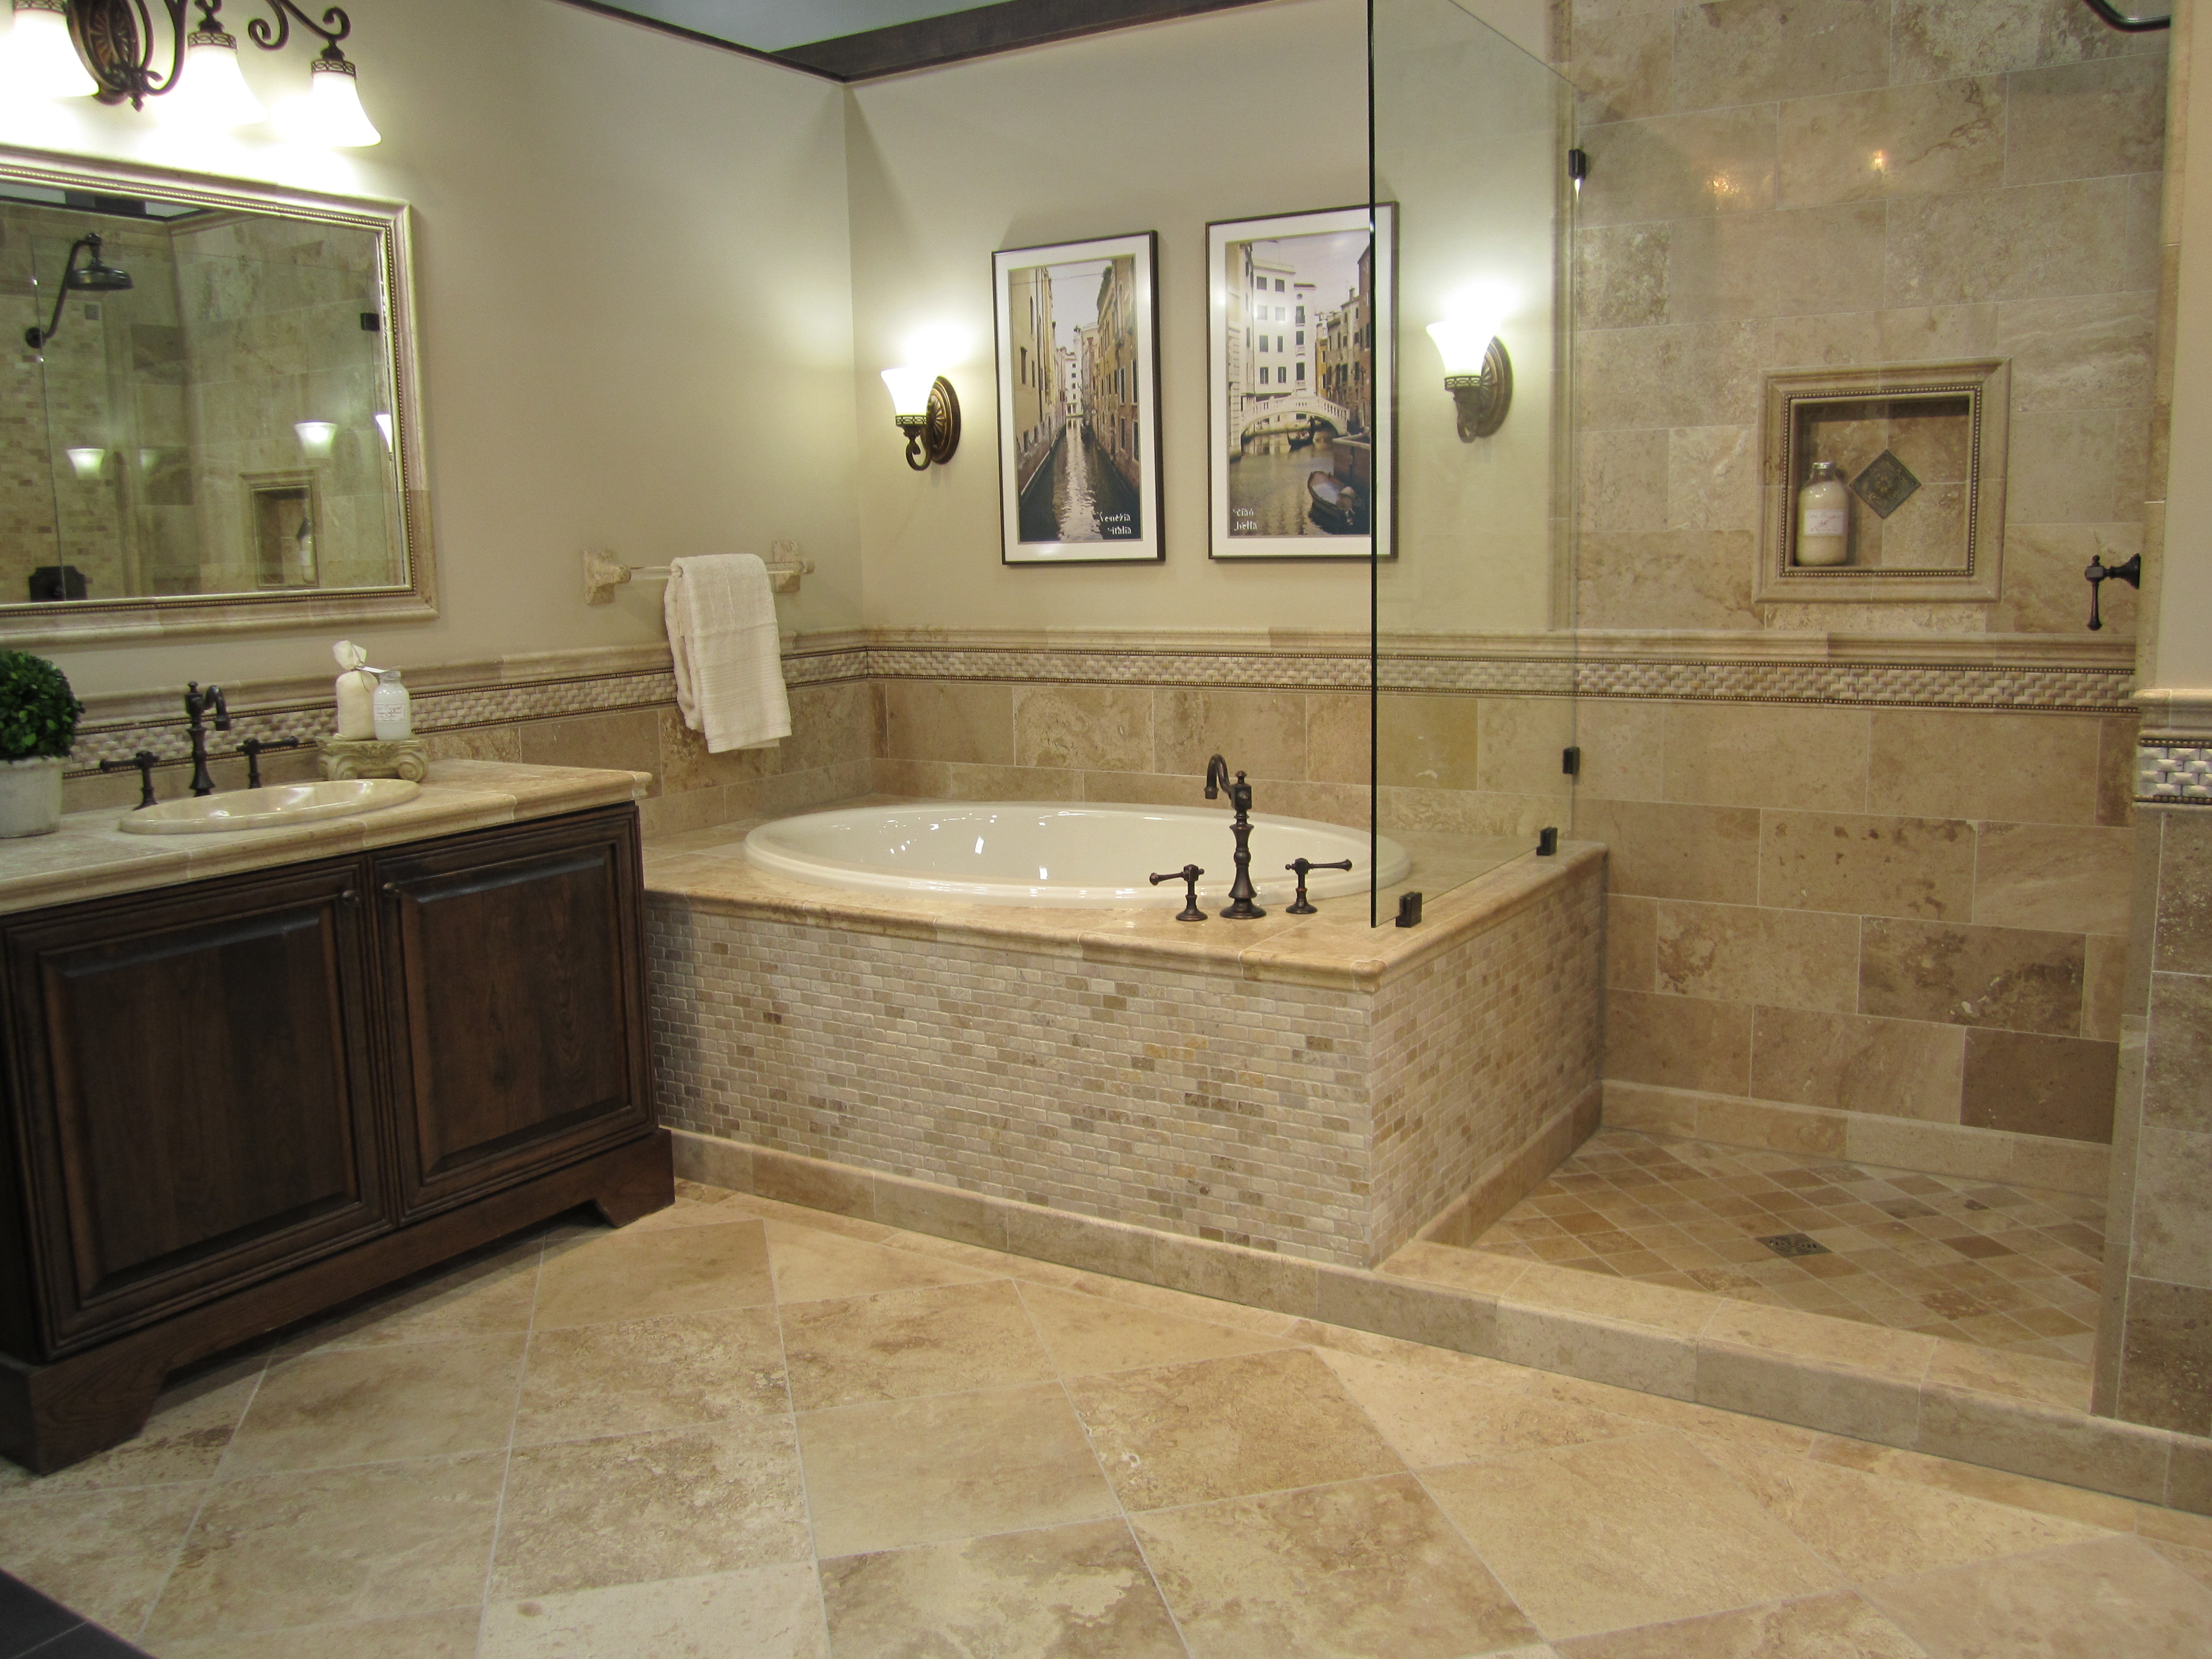 Disadvantages and Advantages of Travertine. Advantages of Travertine Tile